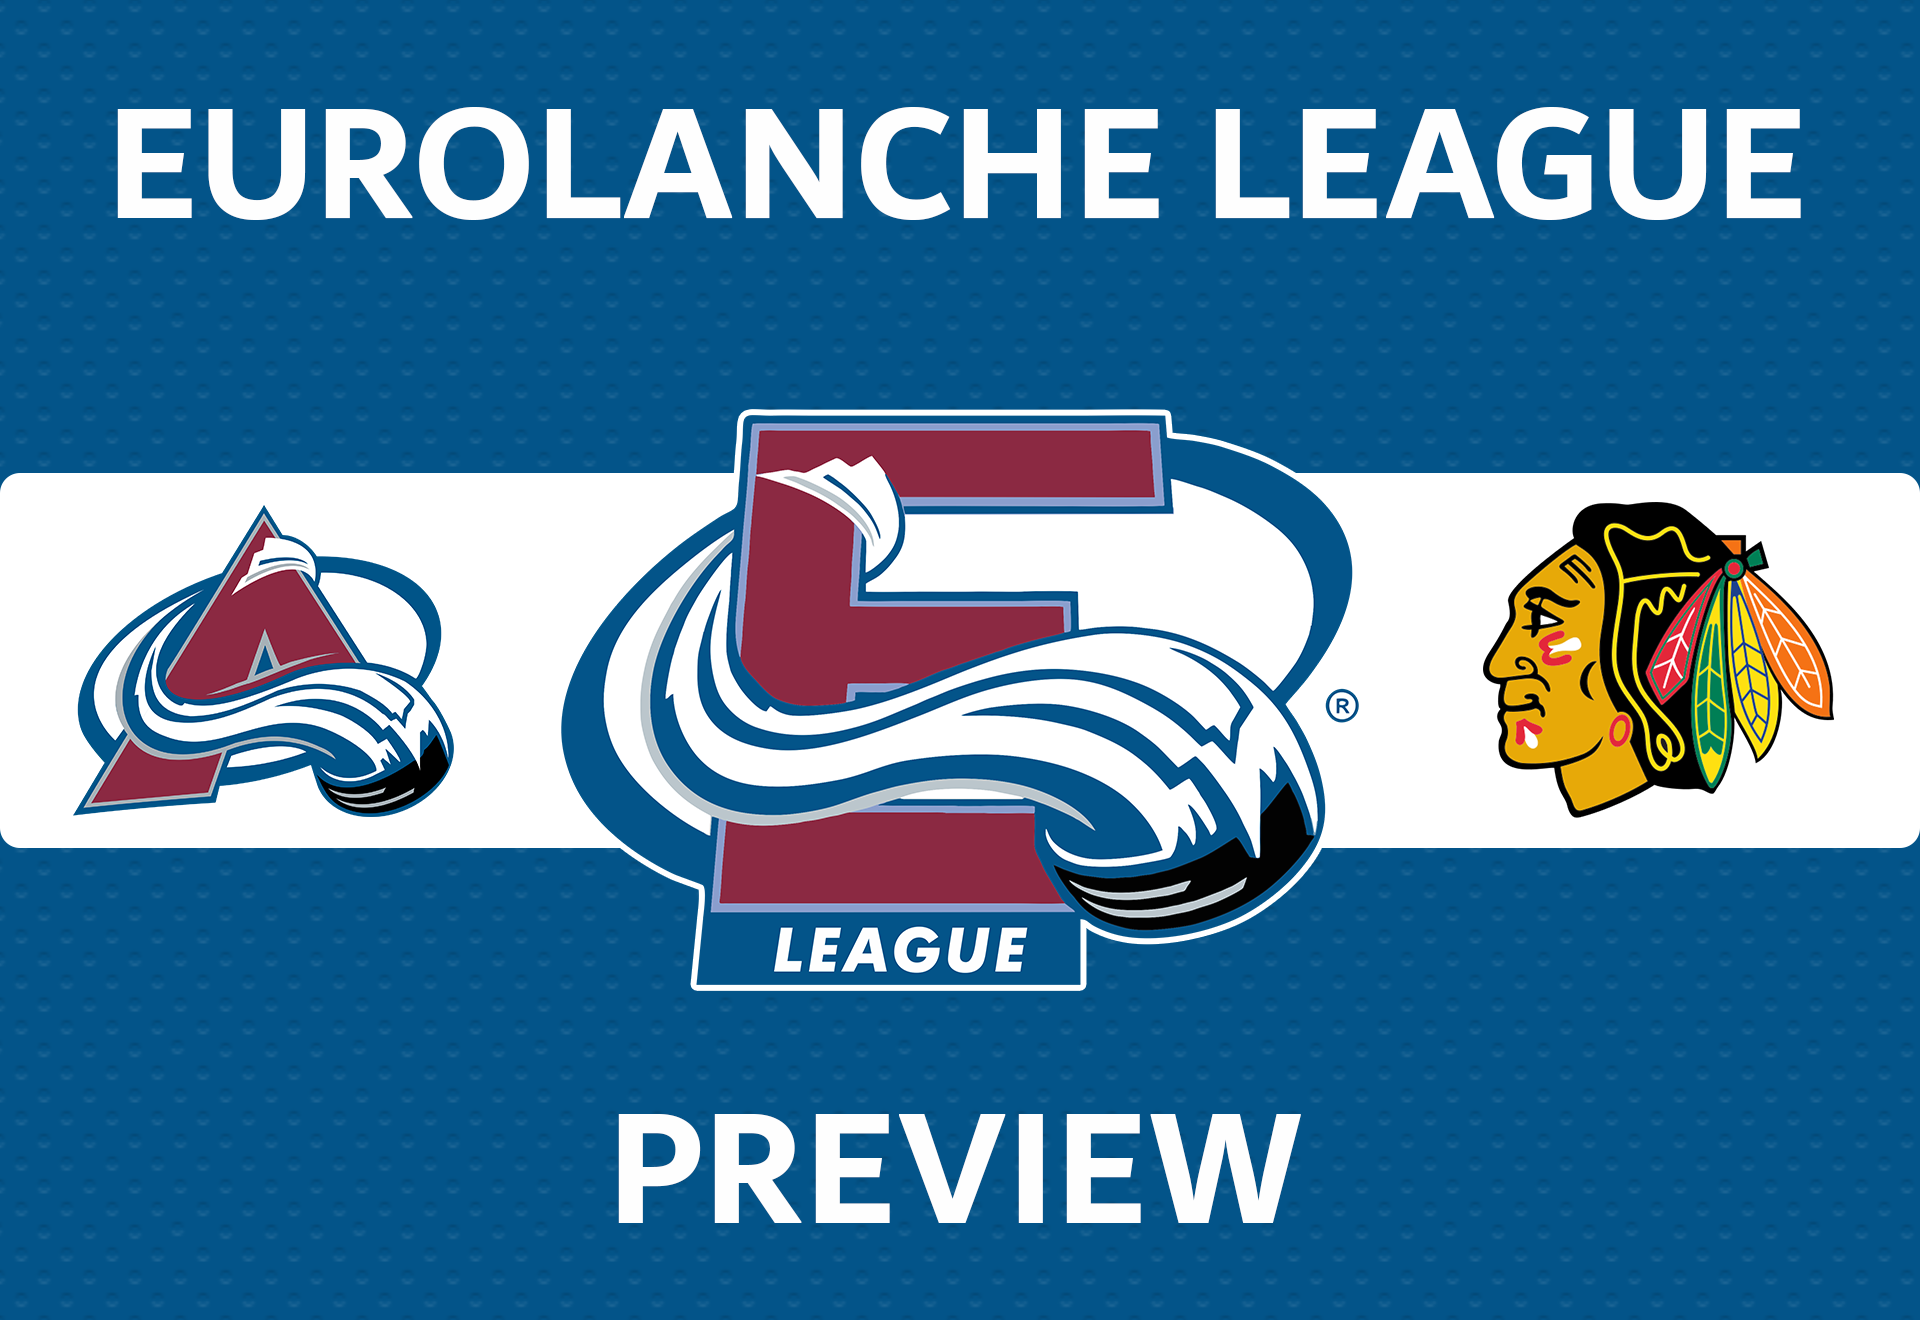 Eurolanche League: Zápas proti Blackhawks